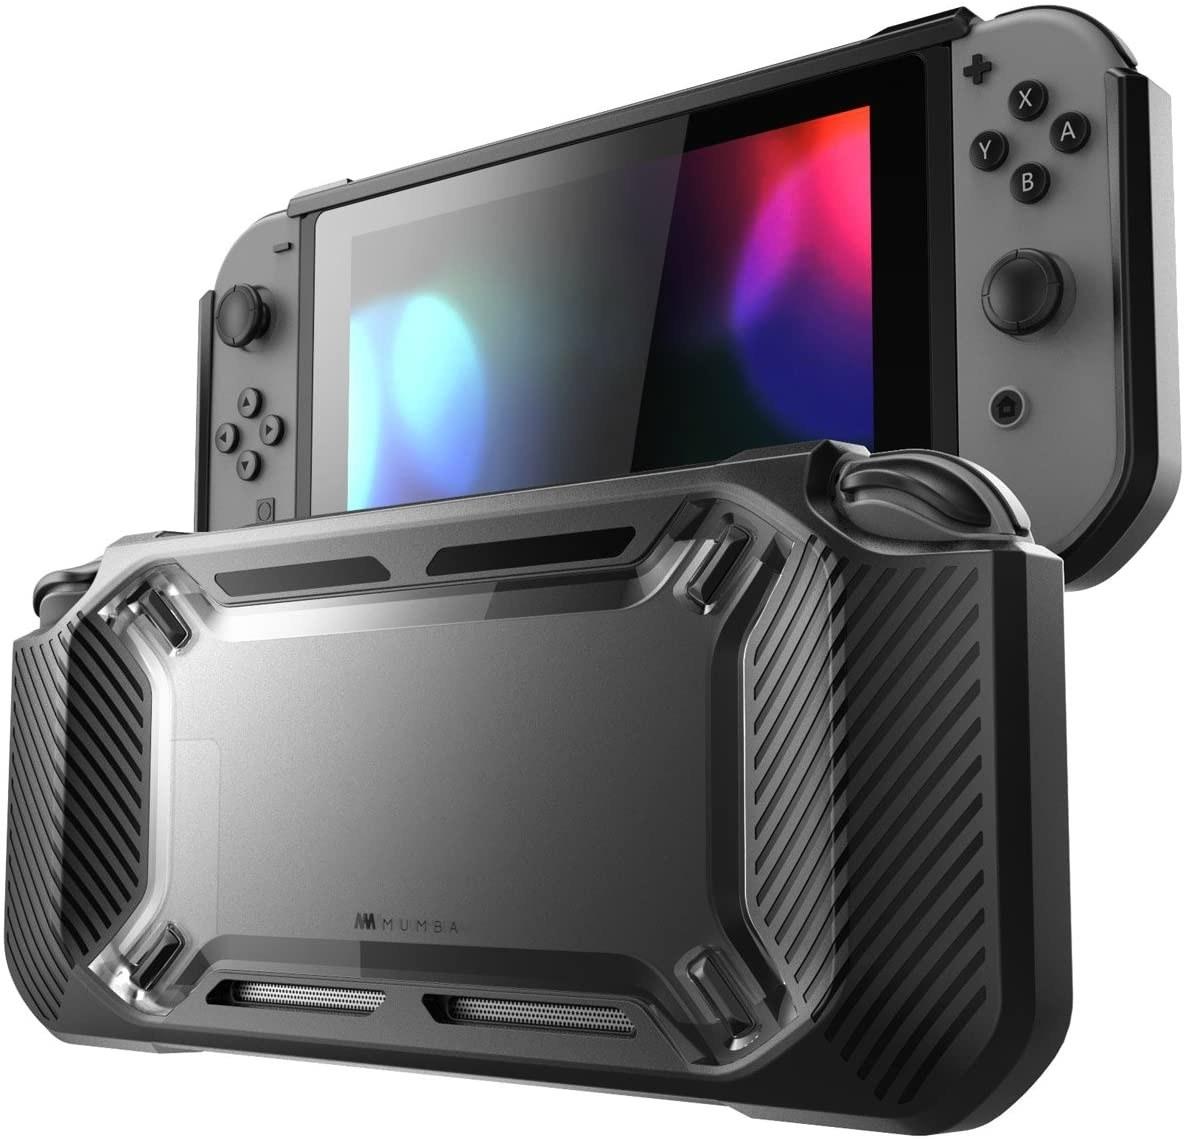 A large rubber casing that attaches to the back of a Switch for both protection and grip-ability